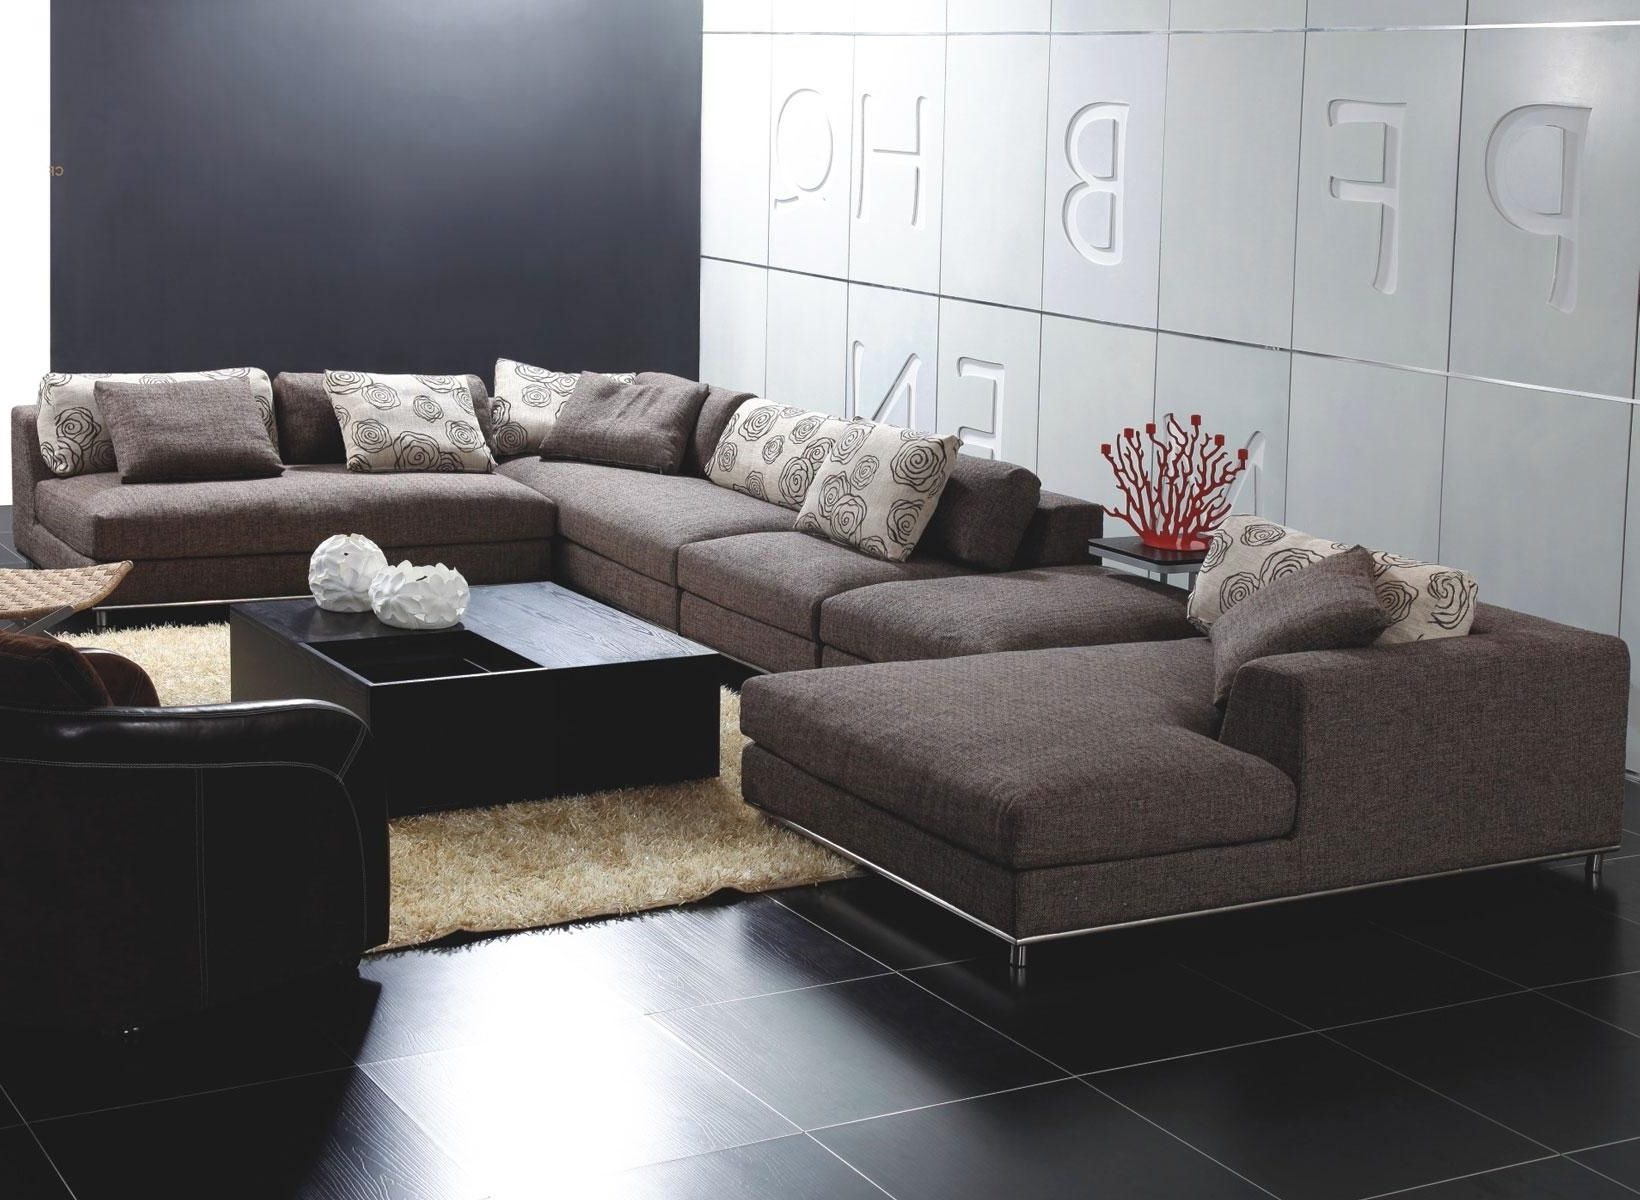 Current Sectional Sofas At Calgary Regarding Depiction Of Best Sectional Sofa For The Money That Will Stun You (View 2 of 15)